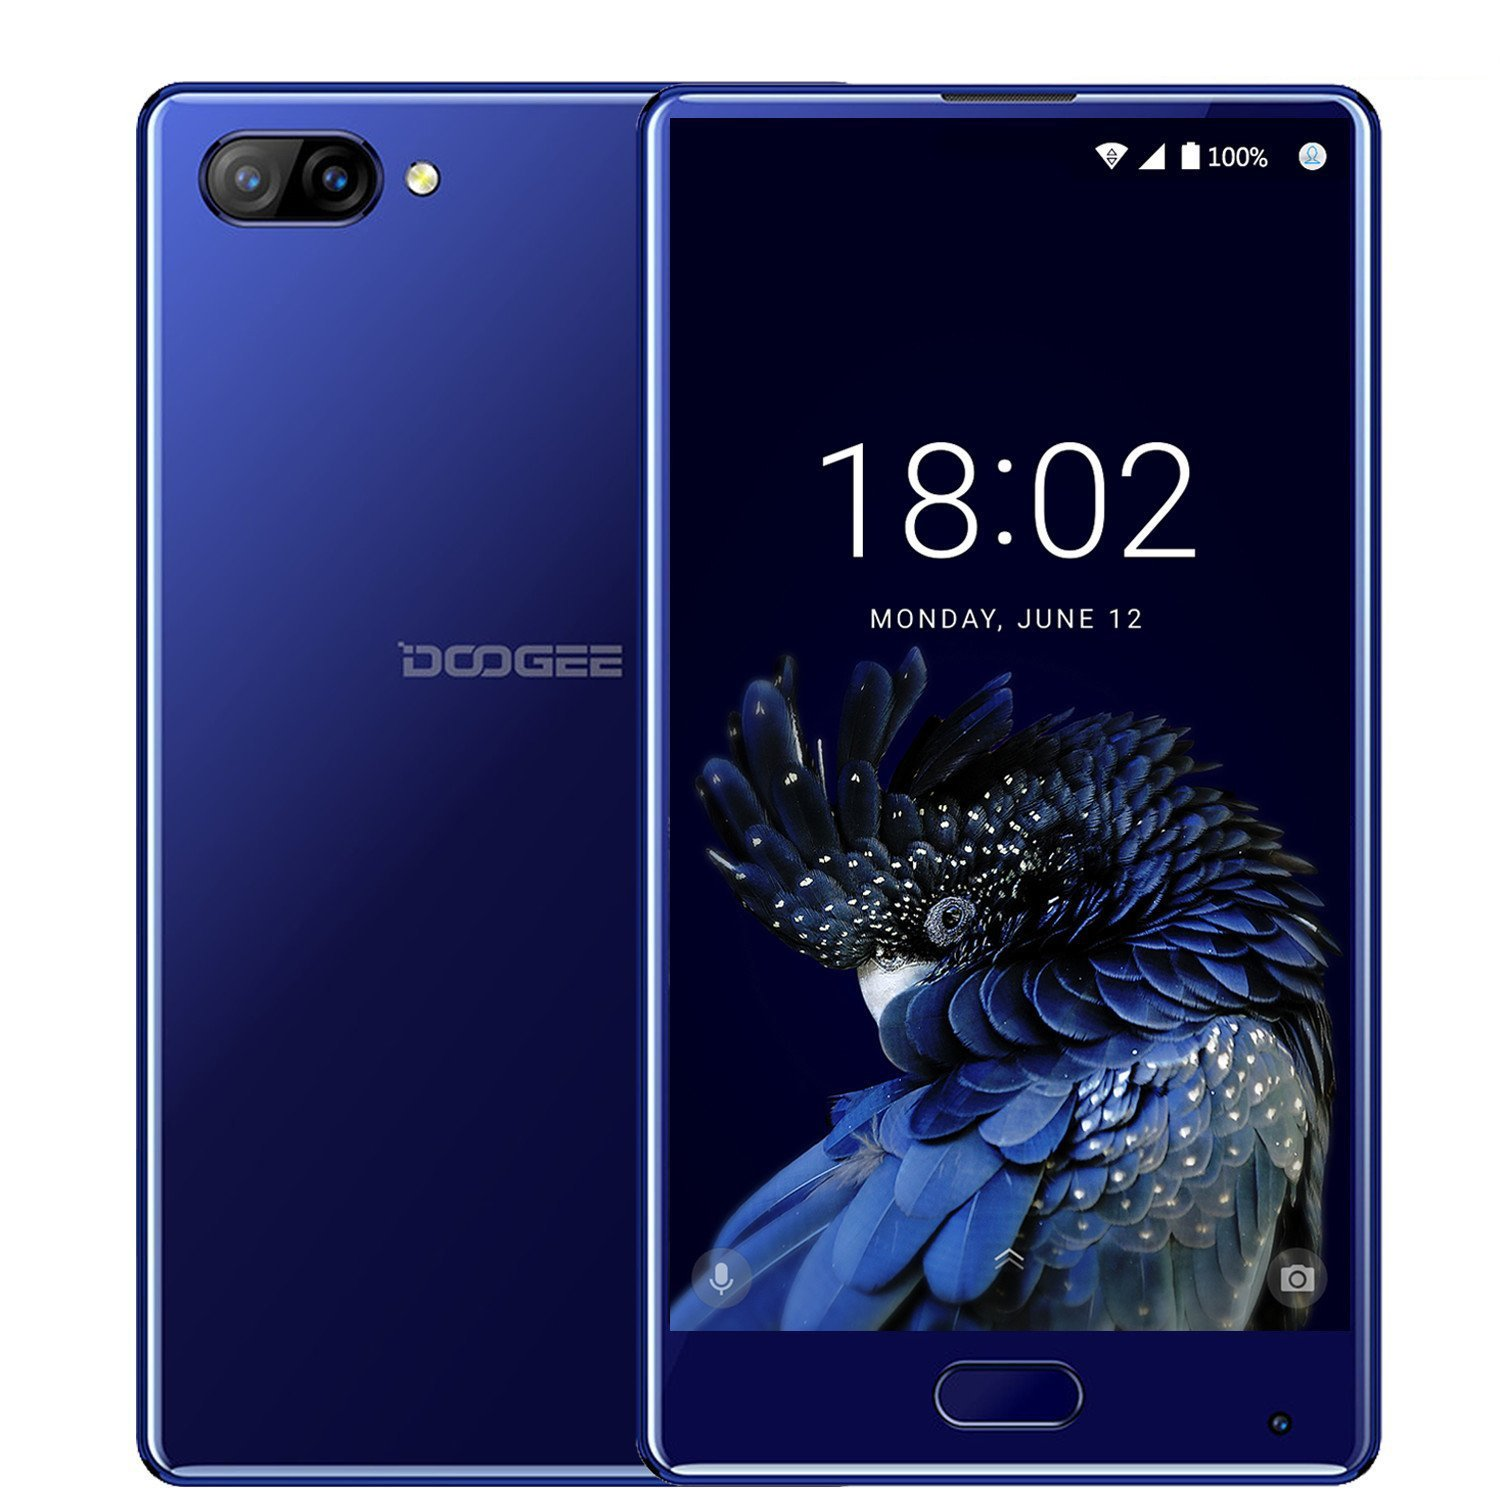 DOOGEE MIX, 4G Unlocked Smartphones Android 7.0 - 5.5 Inch AMOLED HD Screen - MediaTek Helio P25 2.5GHz - 3380mAh Battery - 4GB RAM+64GB ROM - 8MP+16MP Dual Cameras - Unlocked Cell Phones, Blue by Doogee